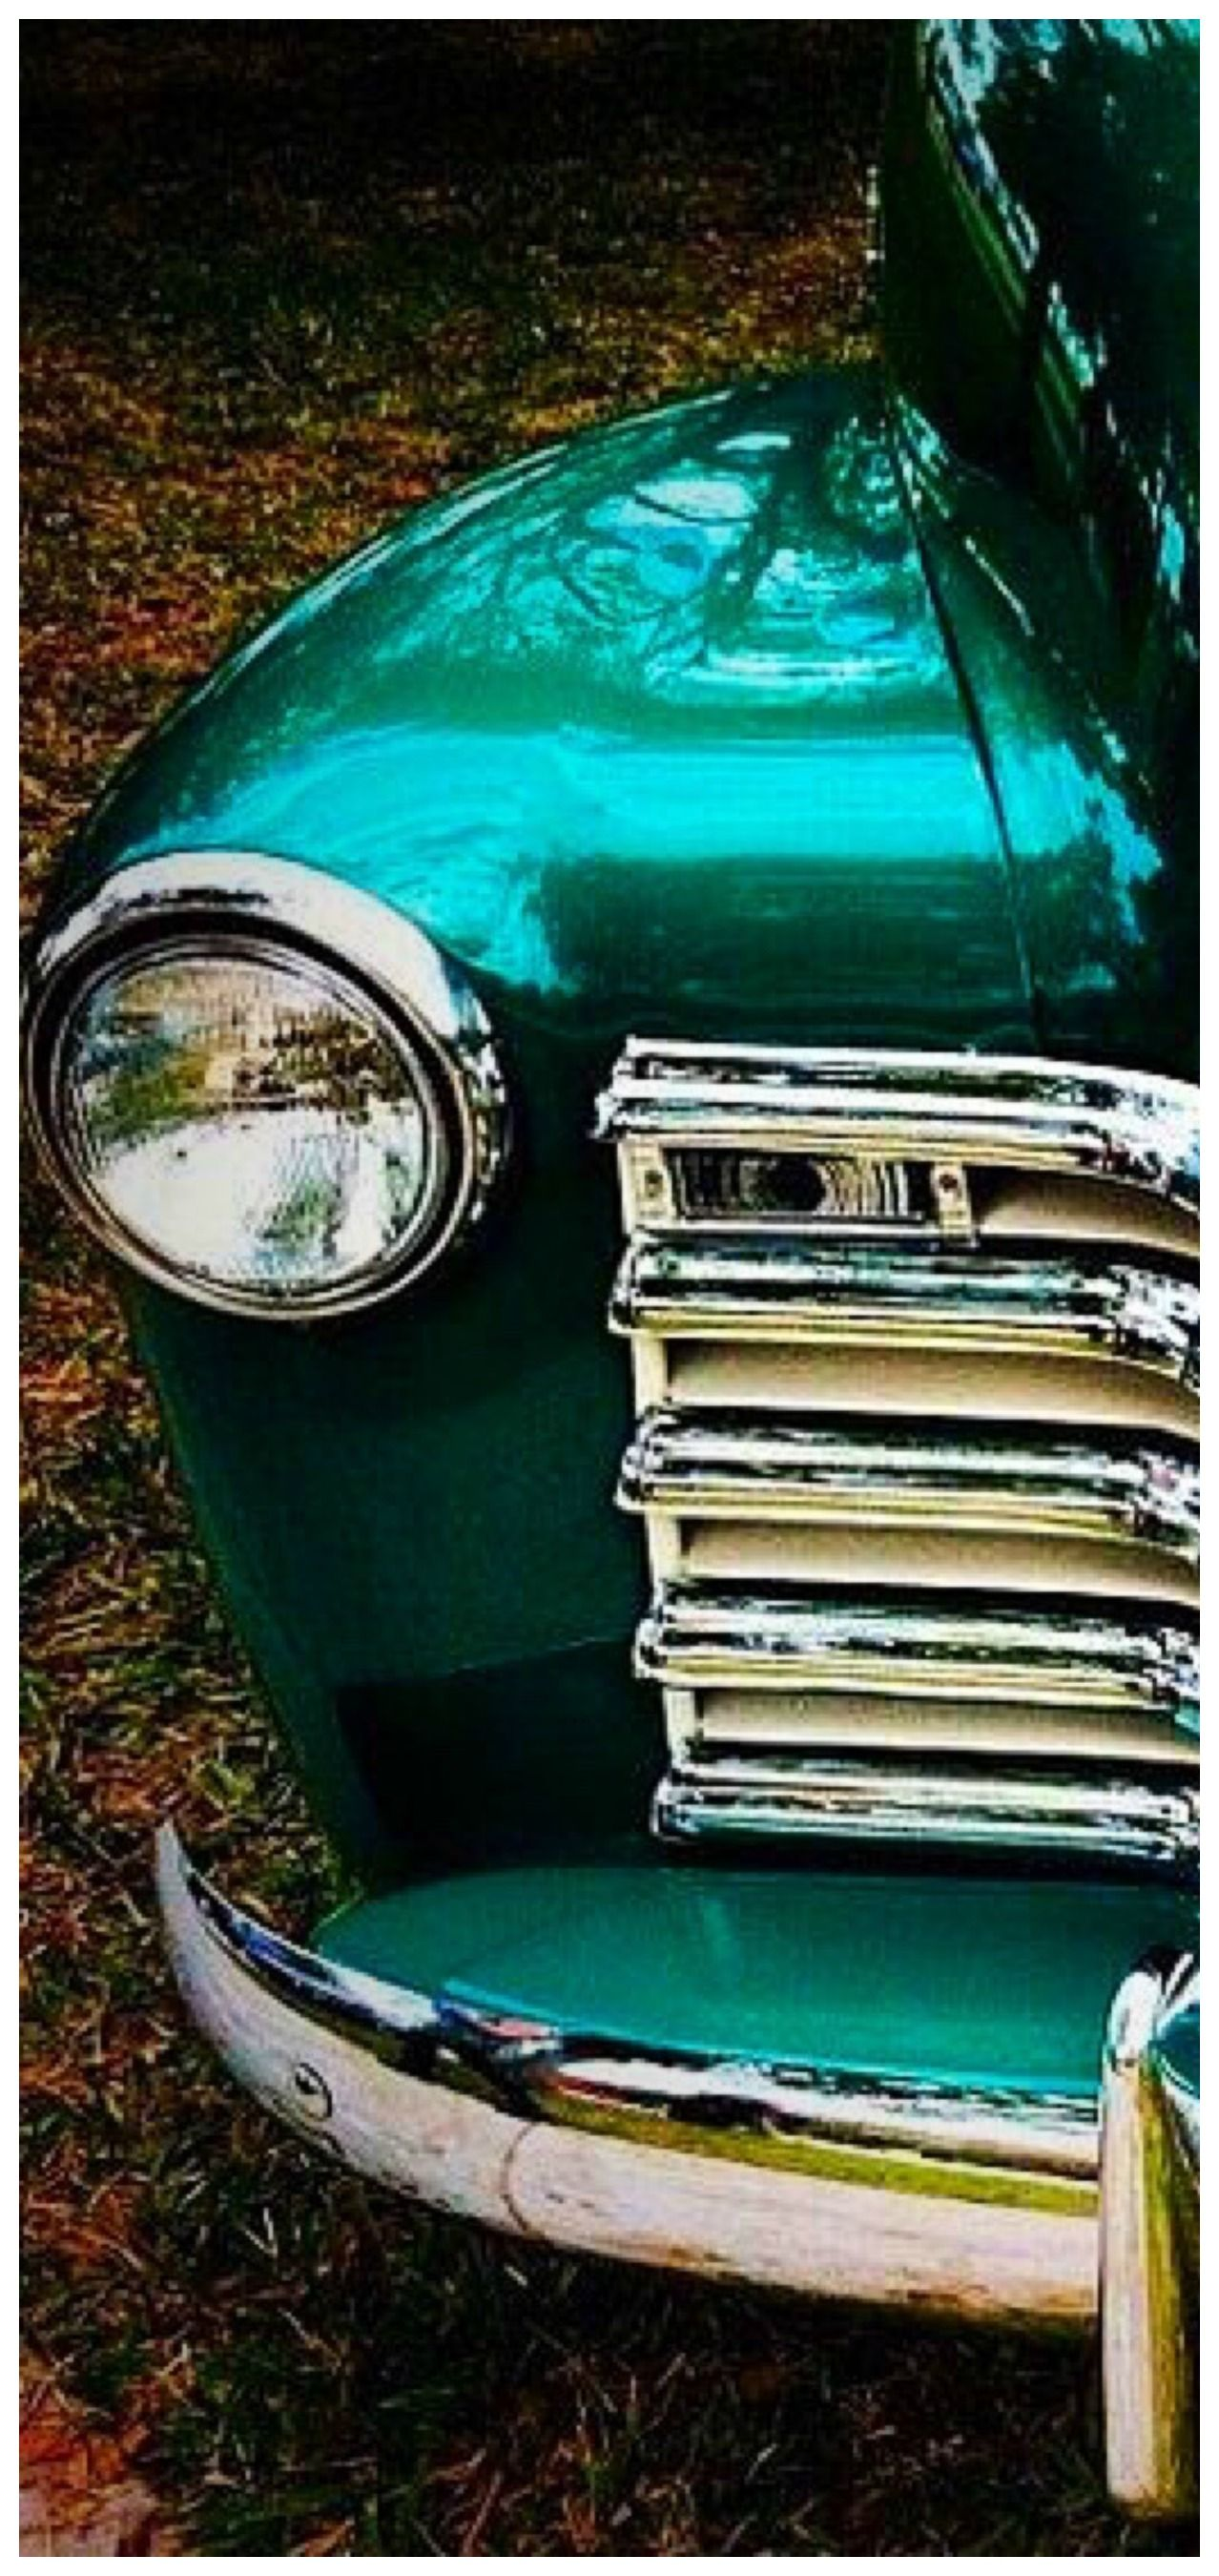 Pin By Tam S Boards On Oldies But Goodies Hot Rodes Classic